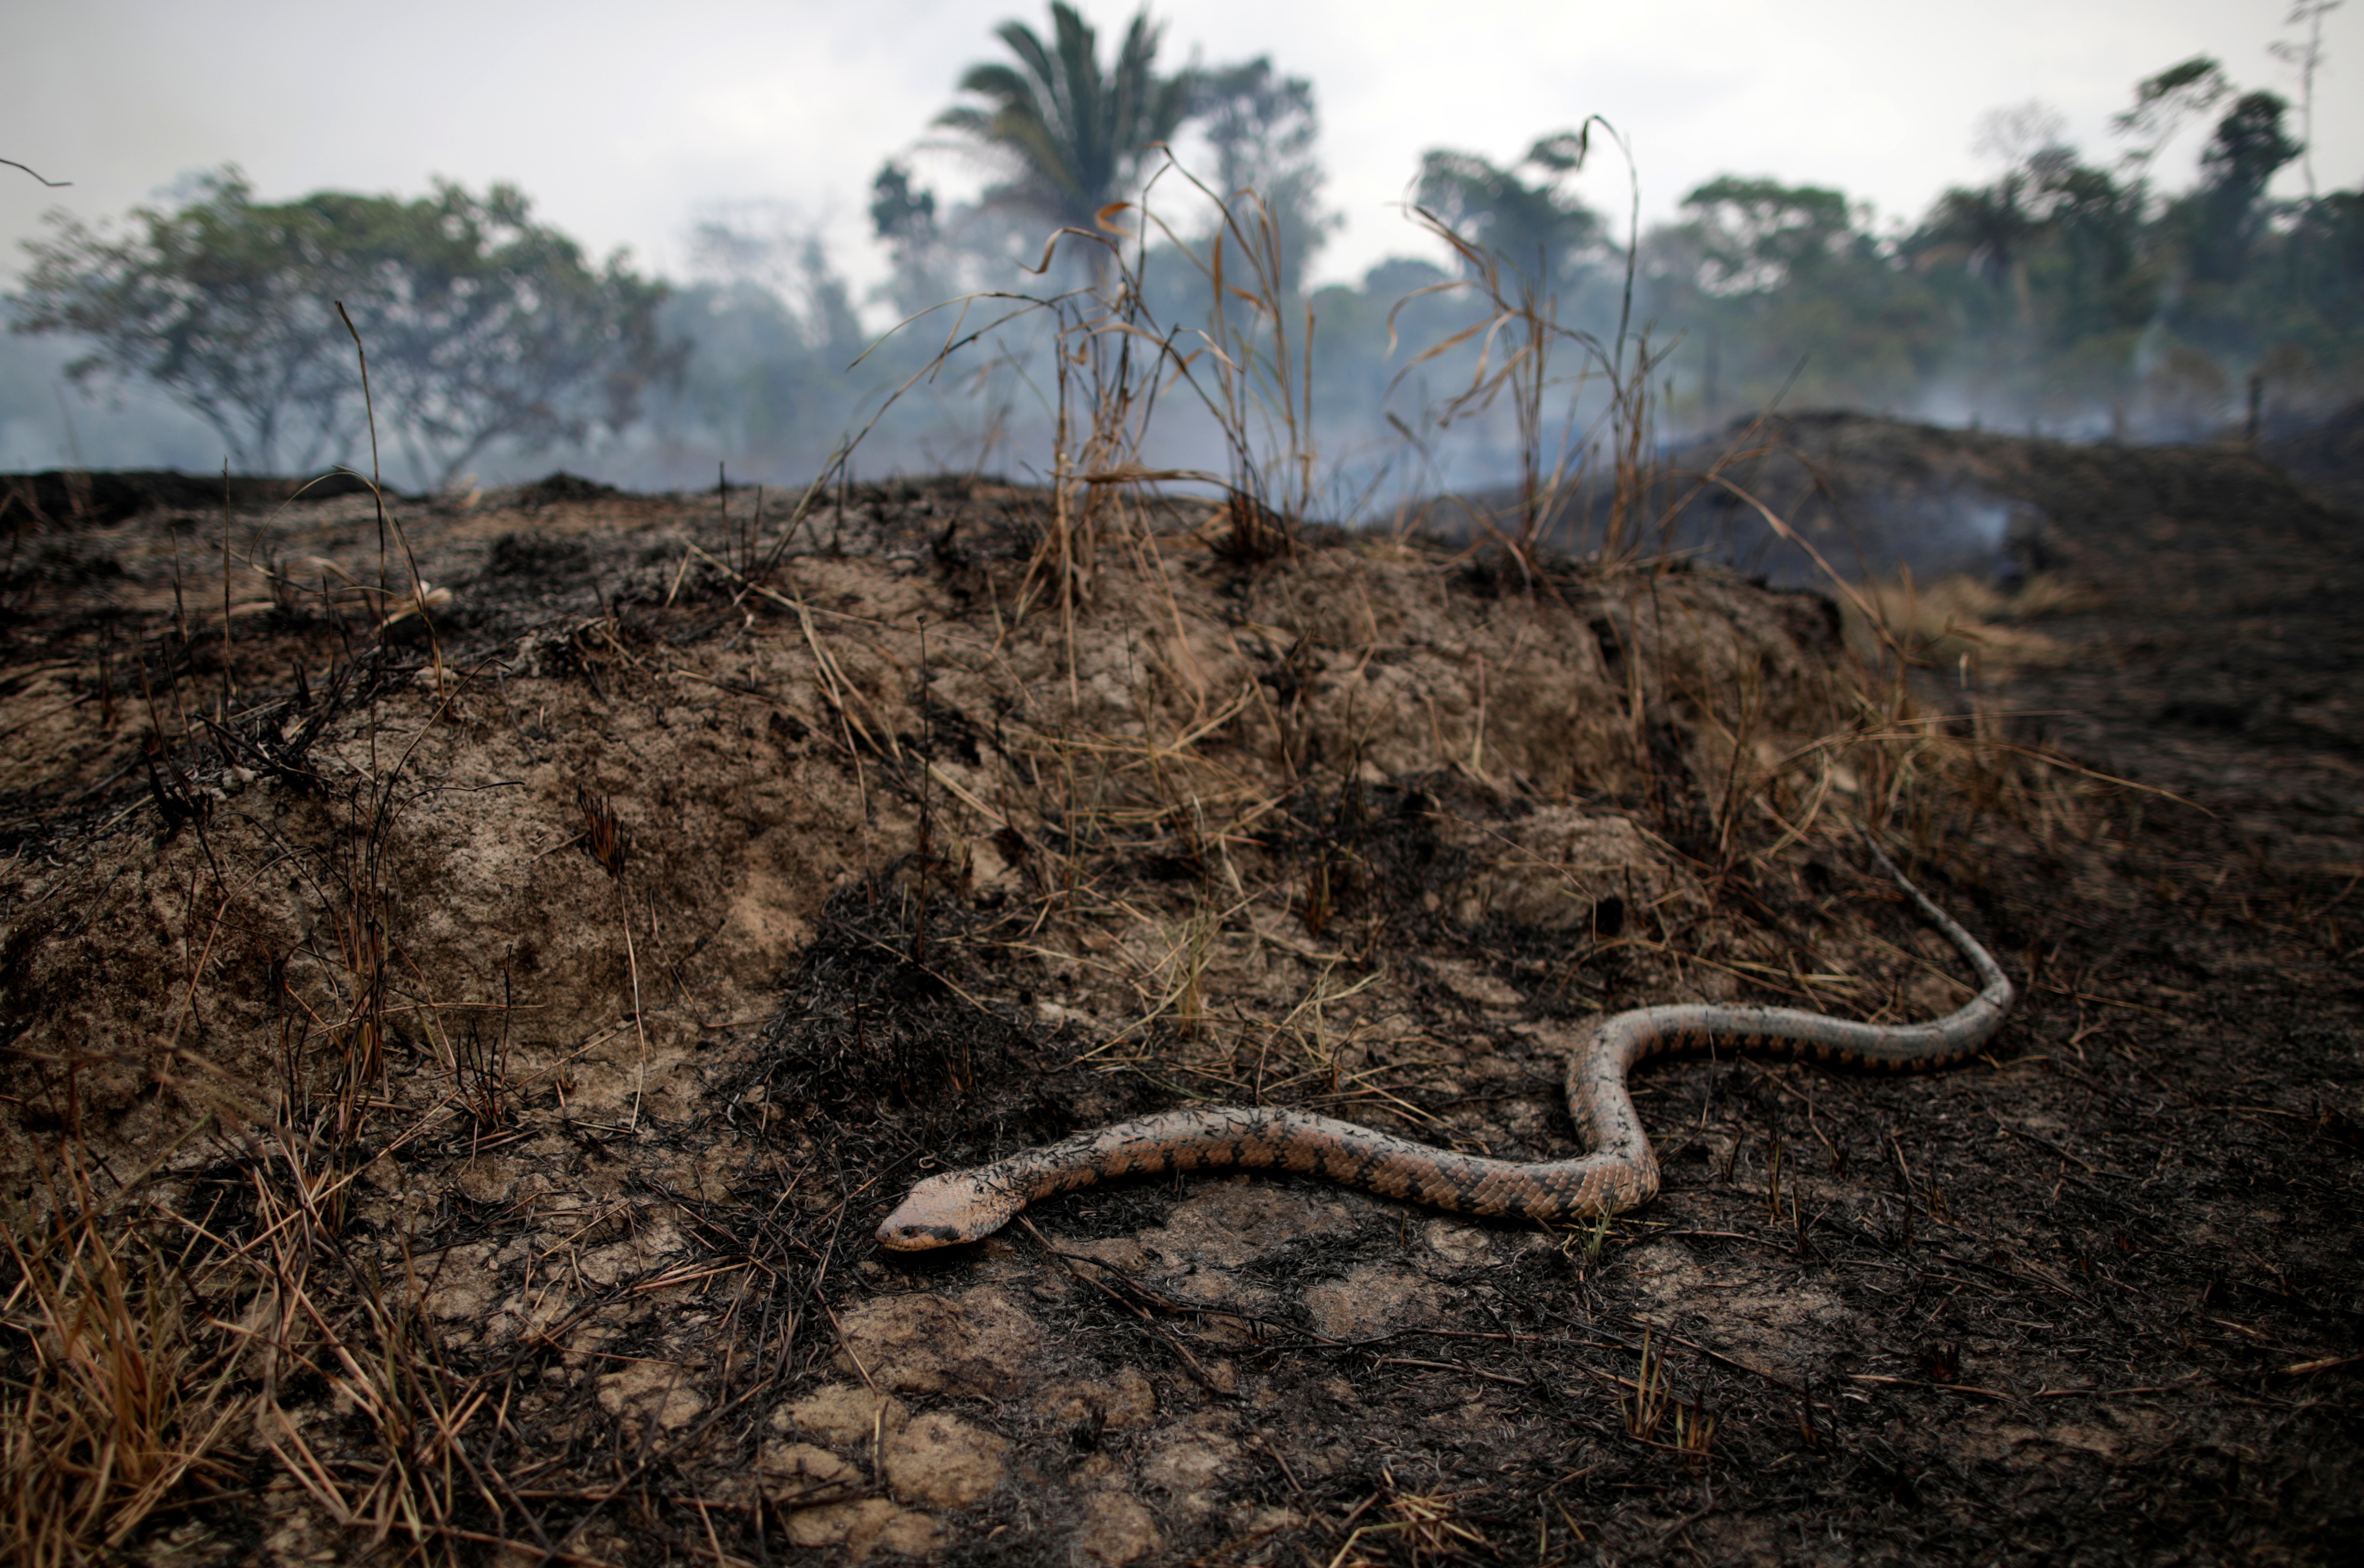 A snake is seen while a tract of the Amazon jungle burns as it is cleared by loggers and farmers in Porto Velho, Brazil August 24, 2019. REUTERS/Ueslei Marcelino - RC1D9D219F30